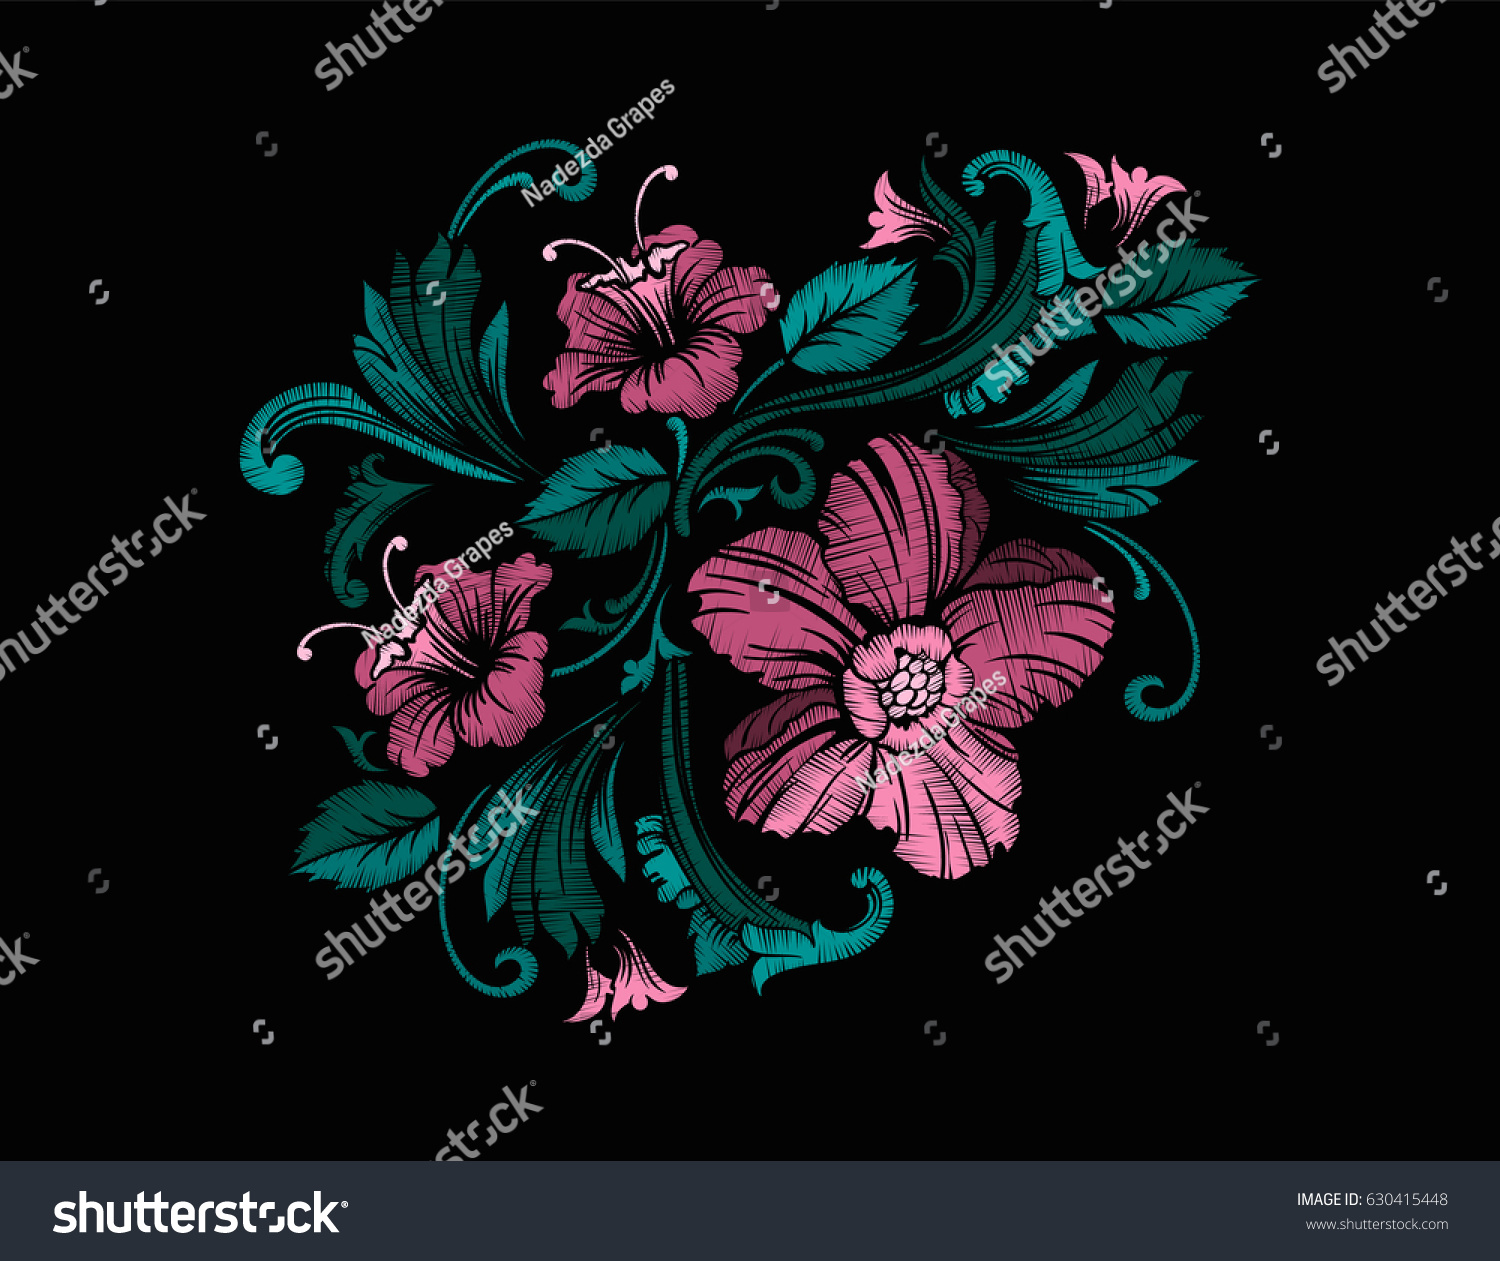 embroidery design baroque style independent composition stock vector 630415448 shutterstock. Black Bedroom Furniture Sets. Home Design Ideas